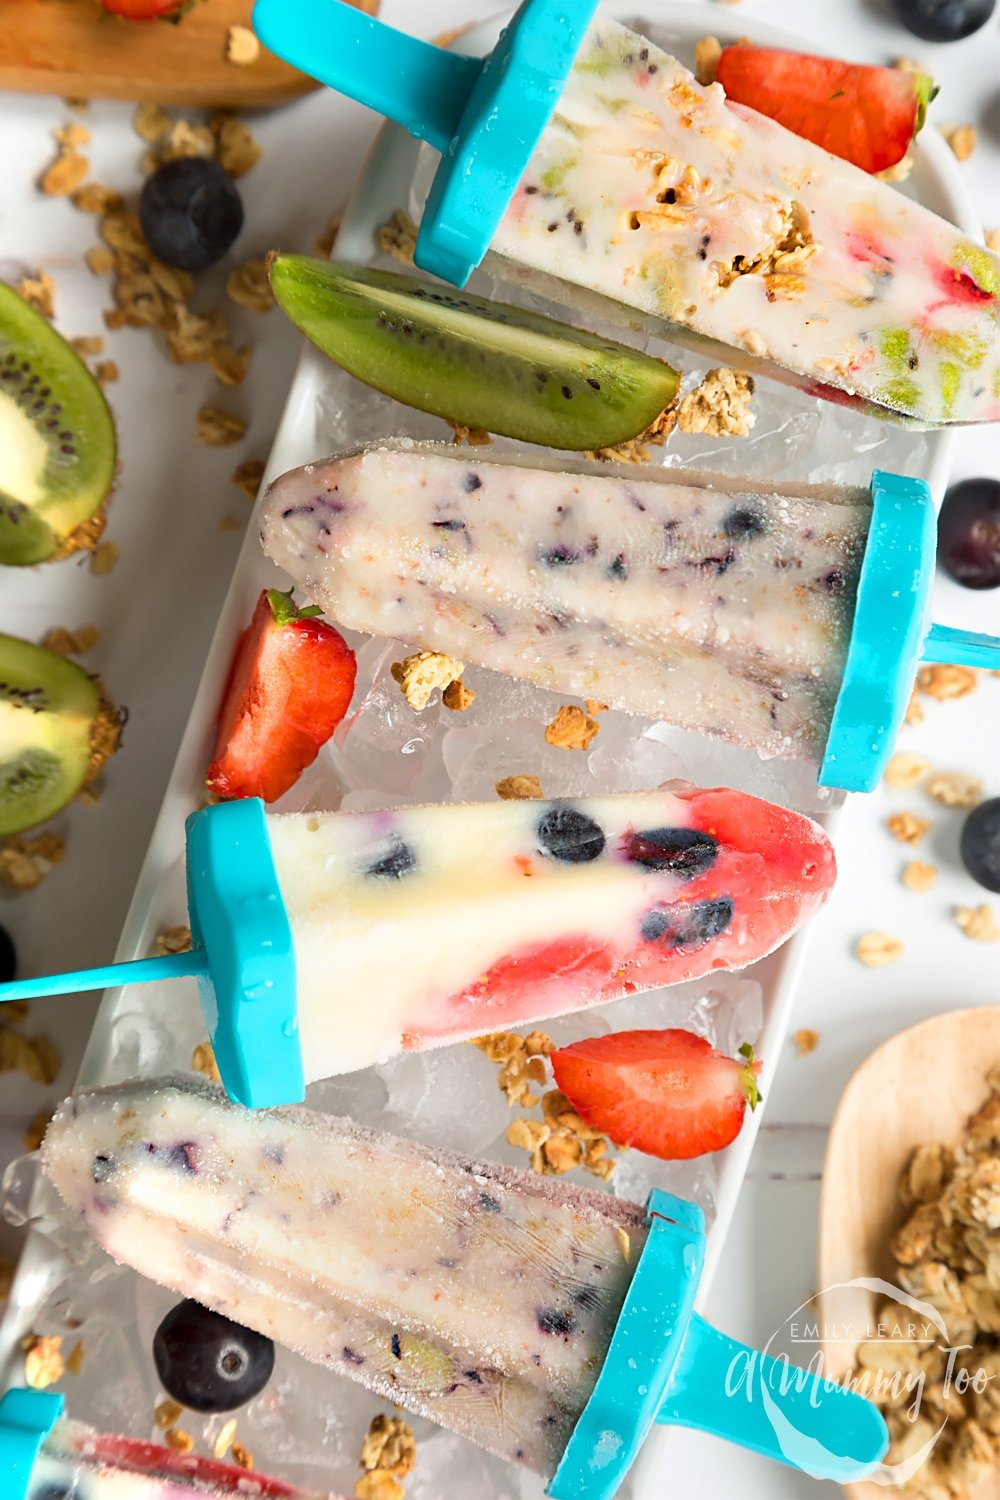 These delicious fruit and yogurt frozen lollies are the perfect, healthy treat for a Summer's day - enjoy them at a picnic or at your next BBQ!